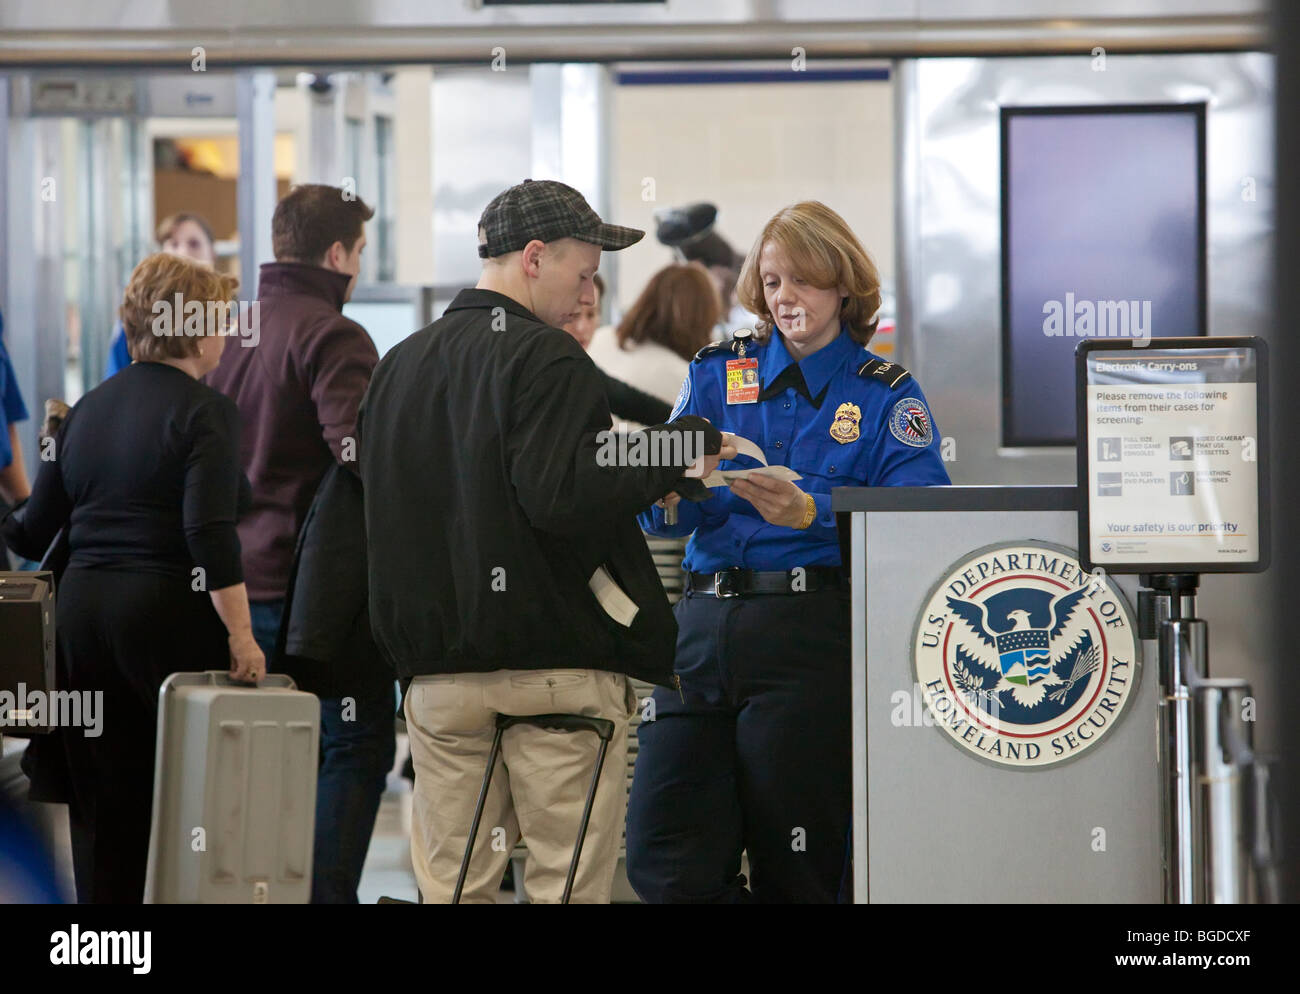 Security officer checks identification of passenger at Detroit Metro Airport - Stock Image